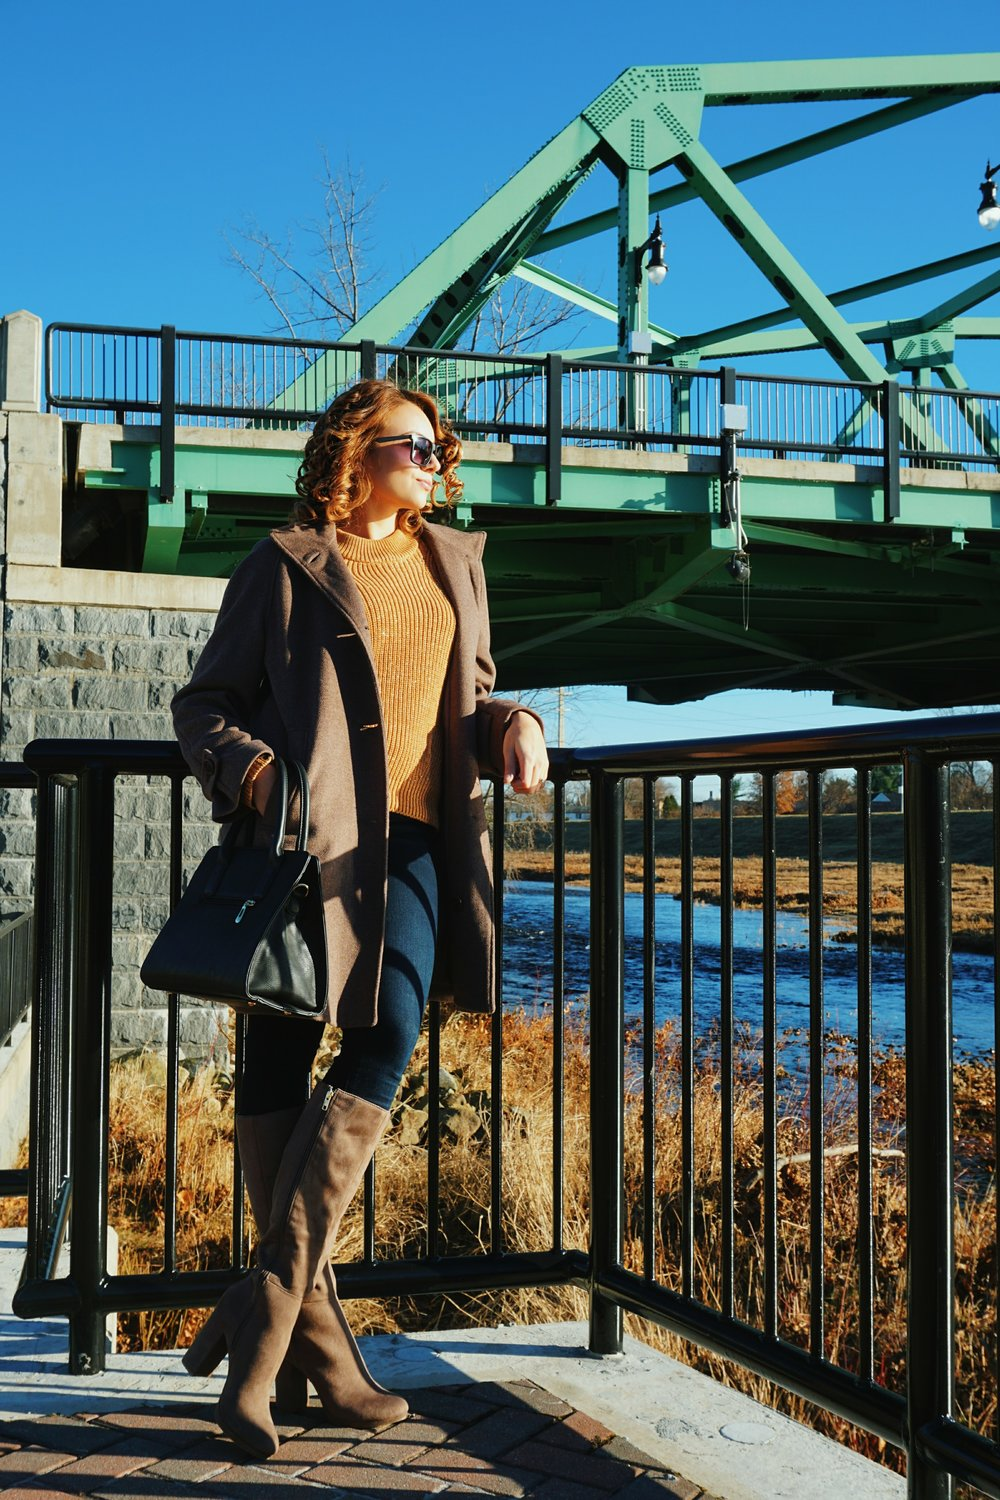 A blogger posing in front of a bridge, wearing a brown coat, high heeled boots, sweater, and a black purse.